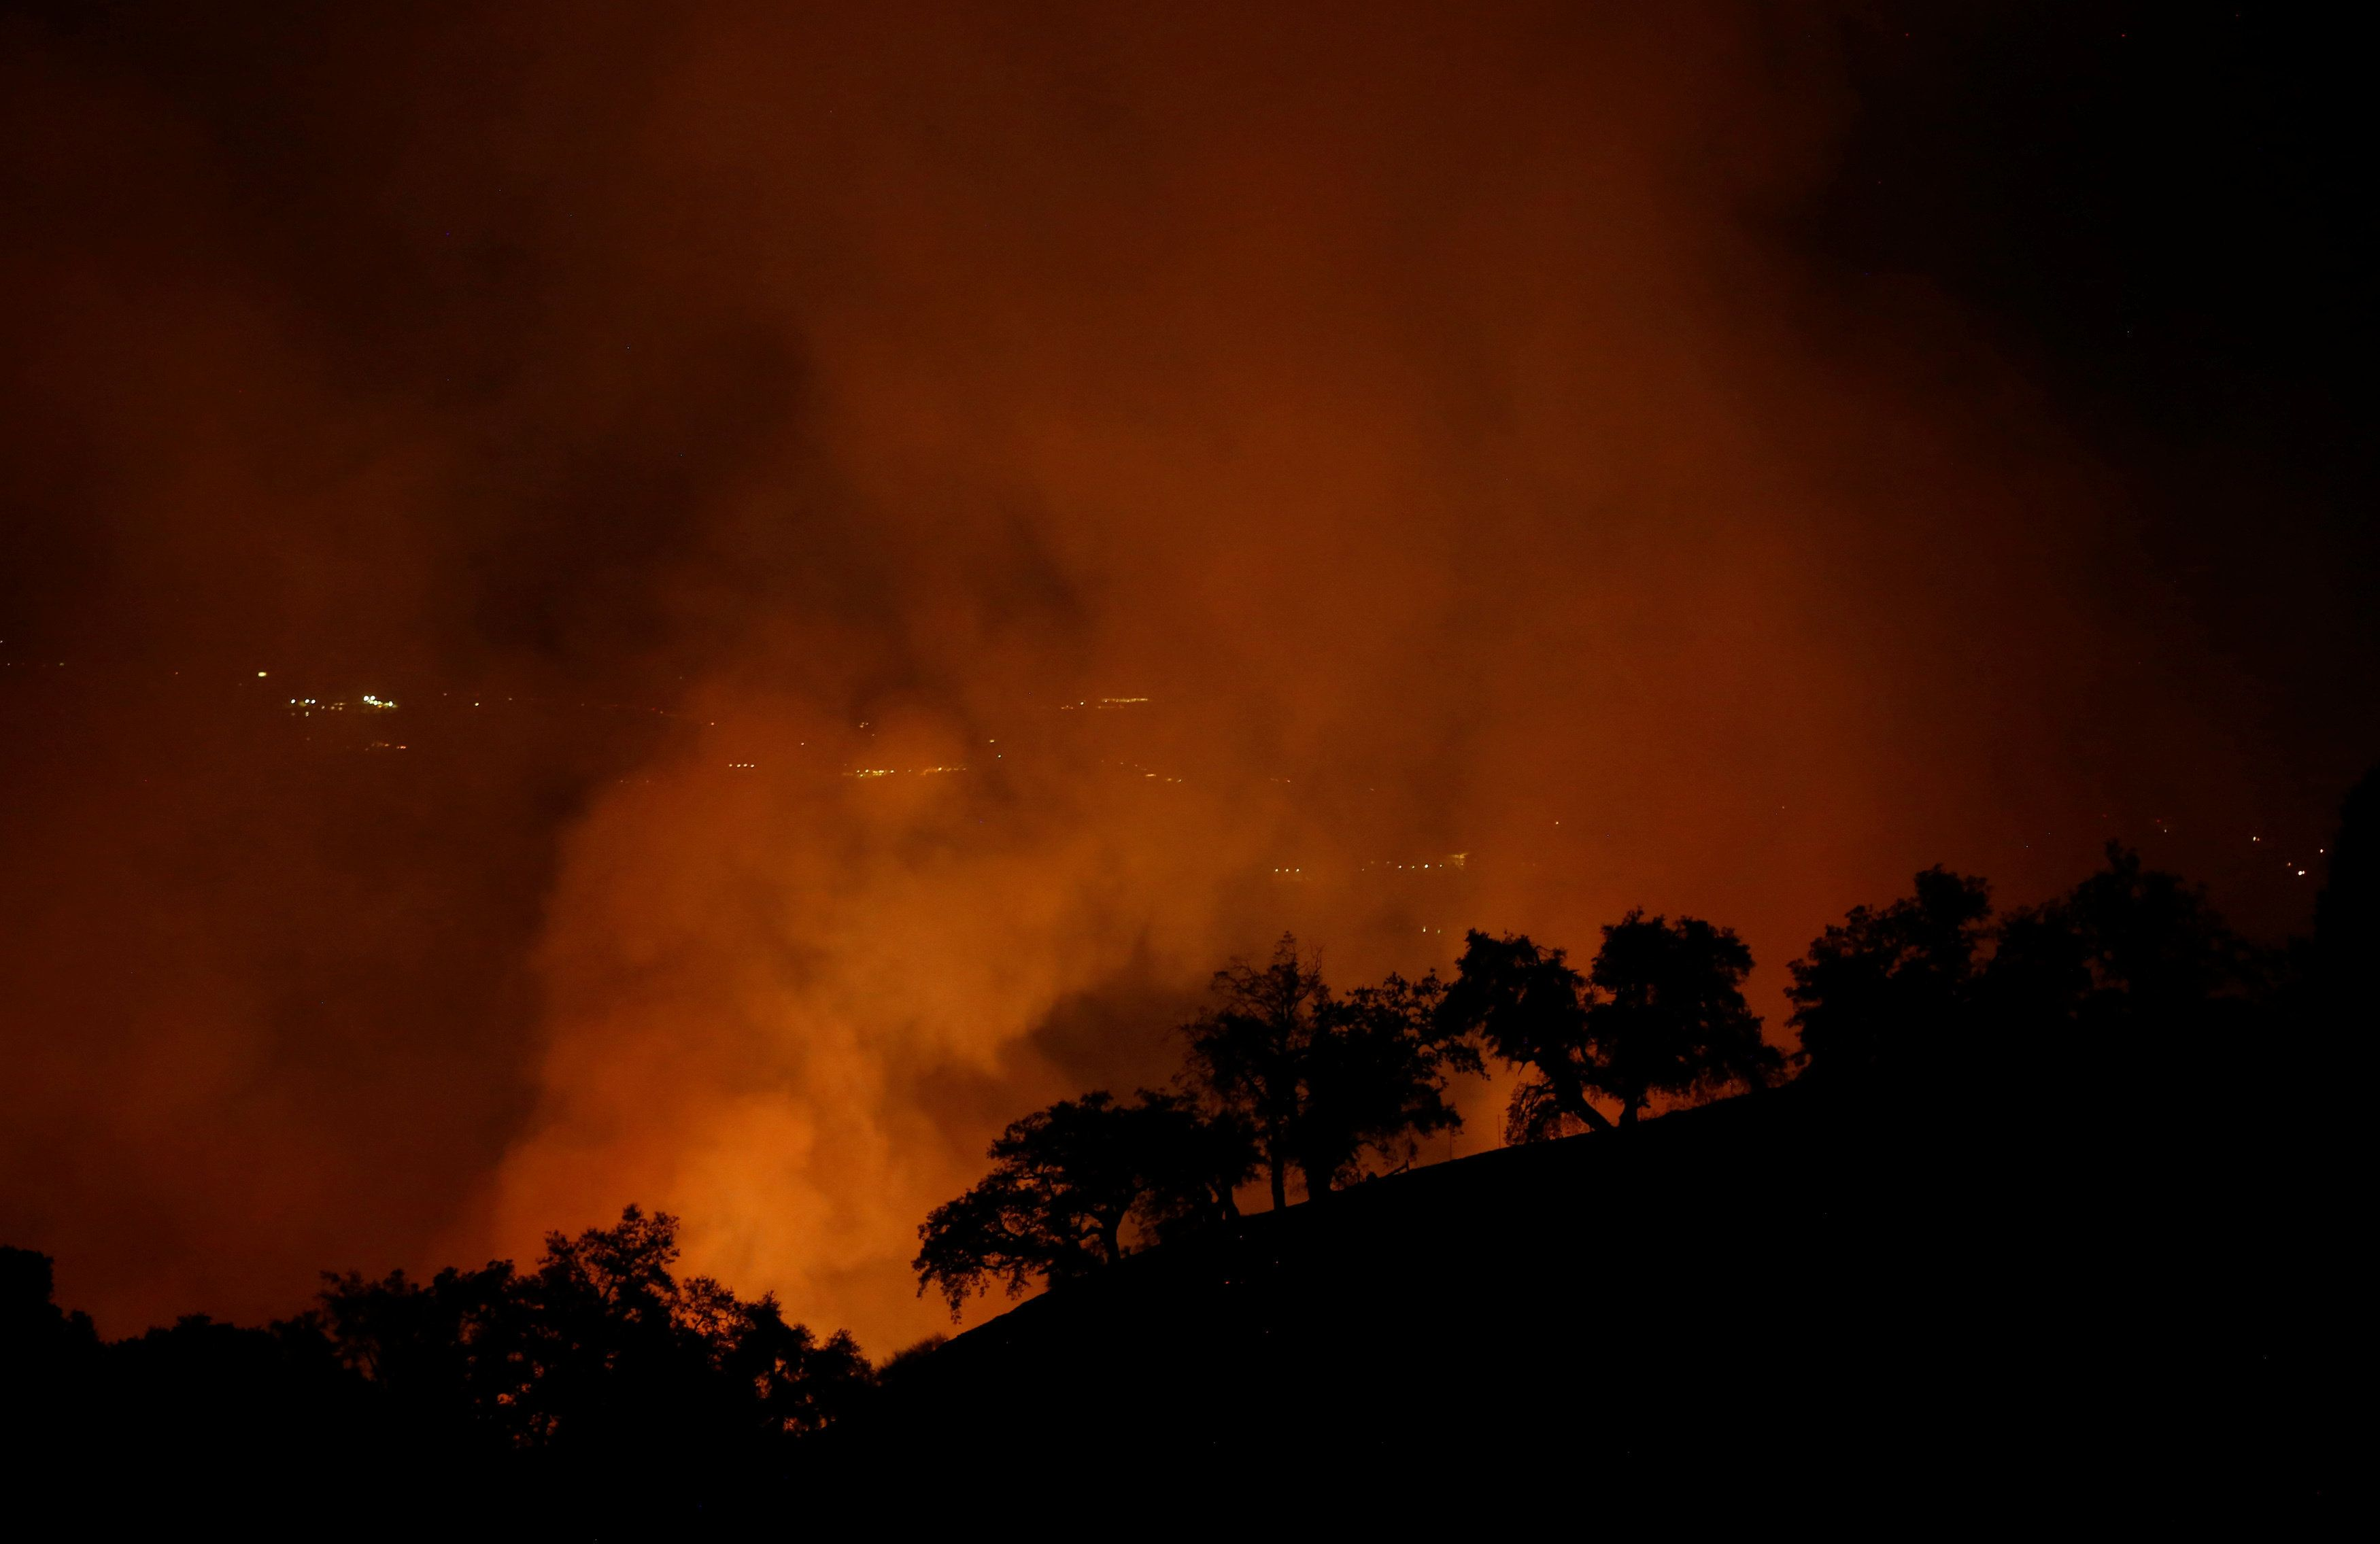 The Pocket wildfire burns in the hills above Geyserville, California, U.S., October 13, 2017. REUTERS/Jim Urquhart